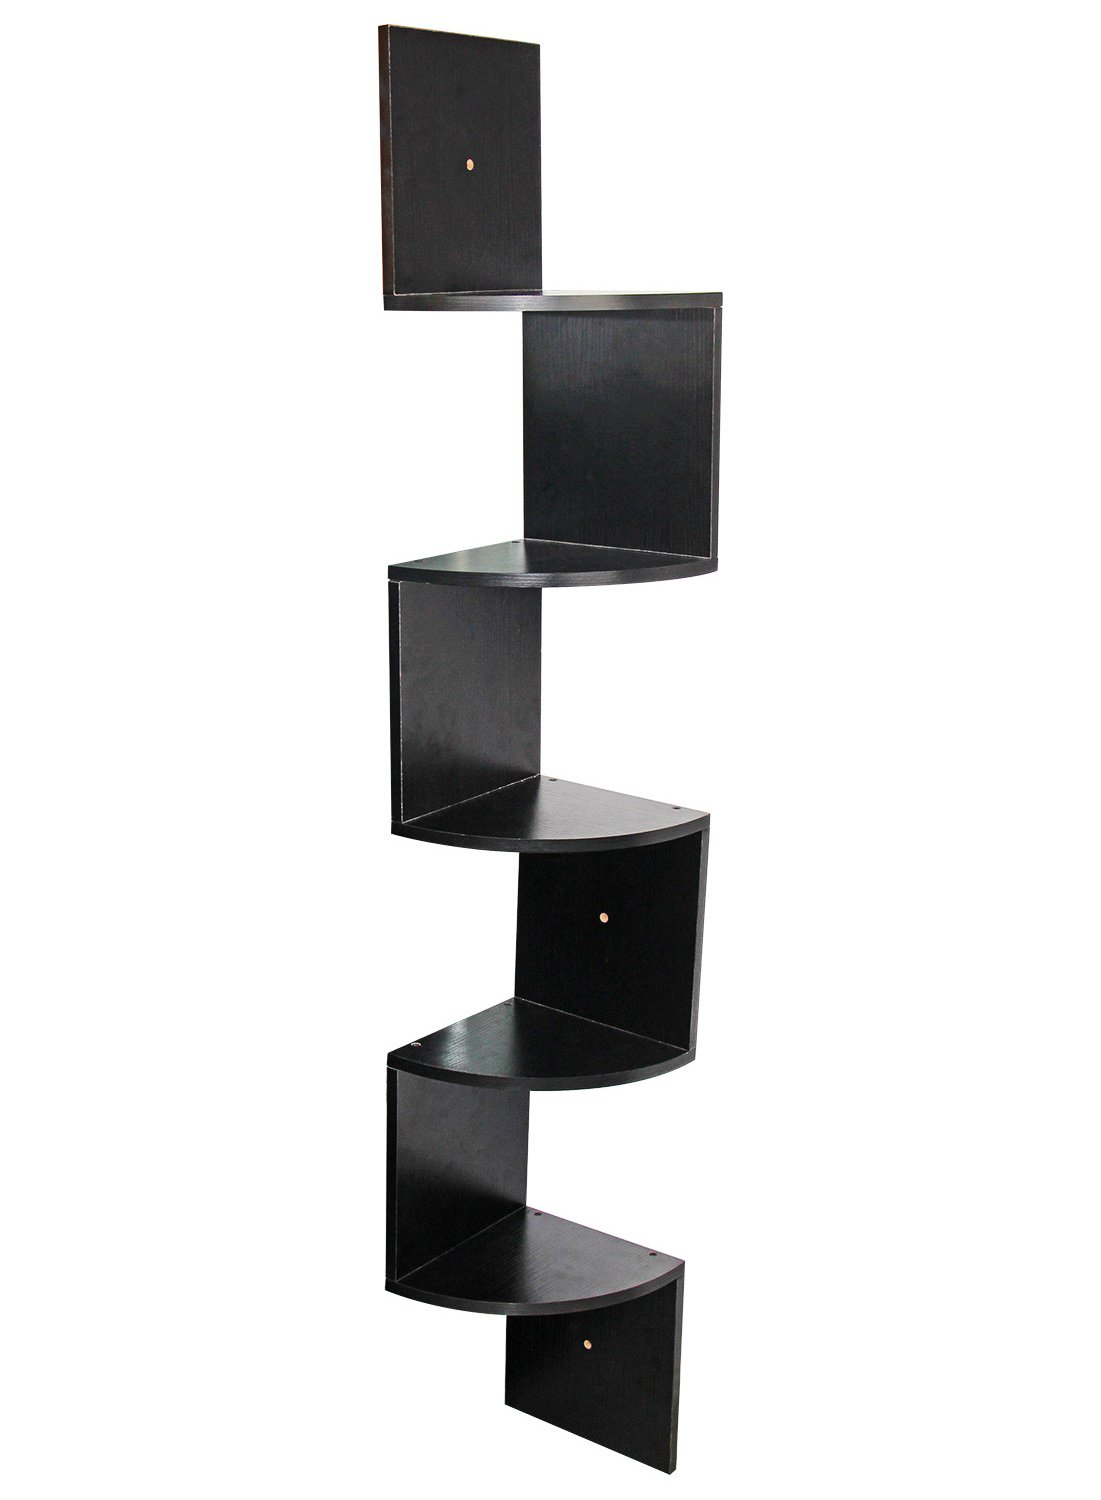 PAG 5 Tier Wall Mounted Floating Corner Shelves Wooden Storage Organizer Unit, Black